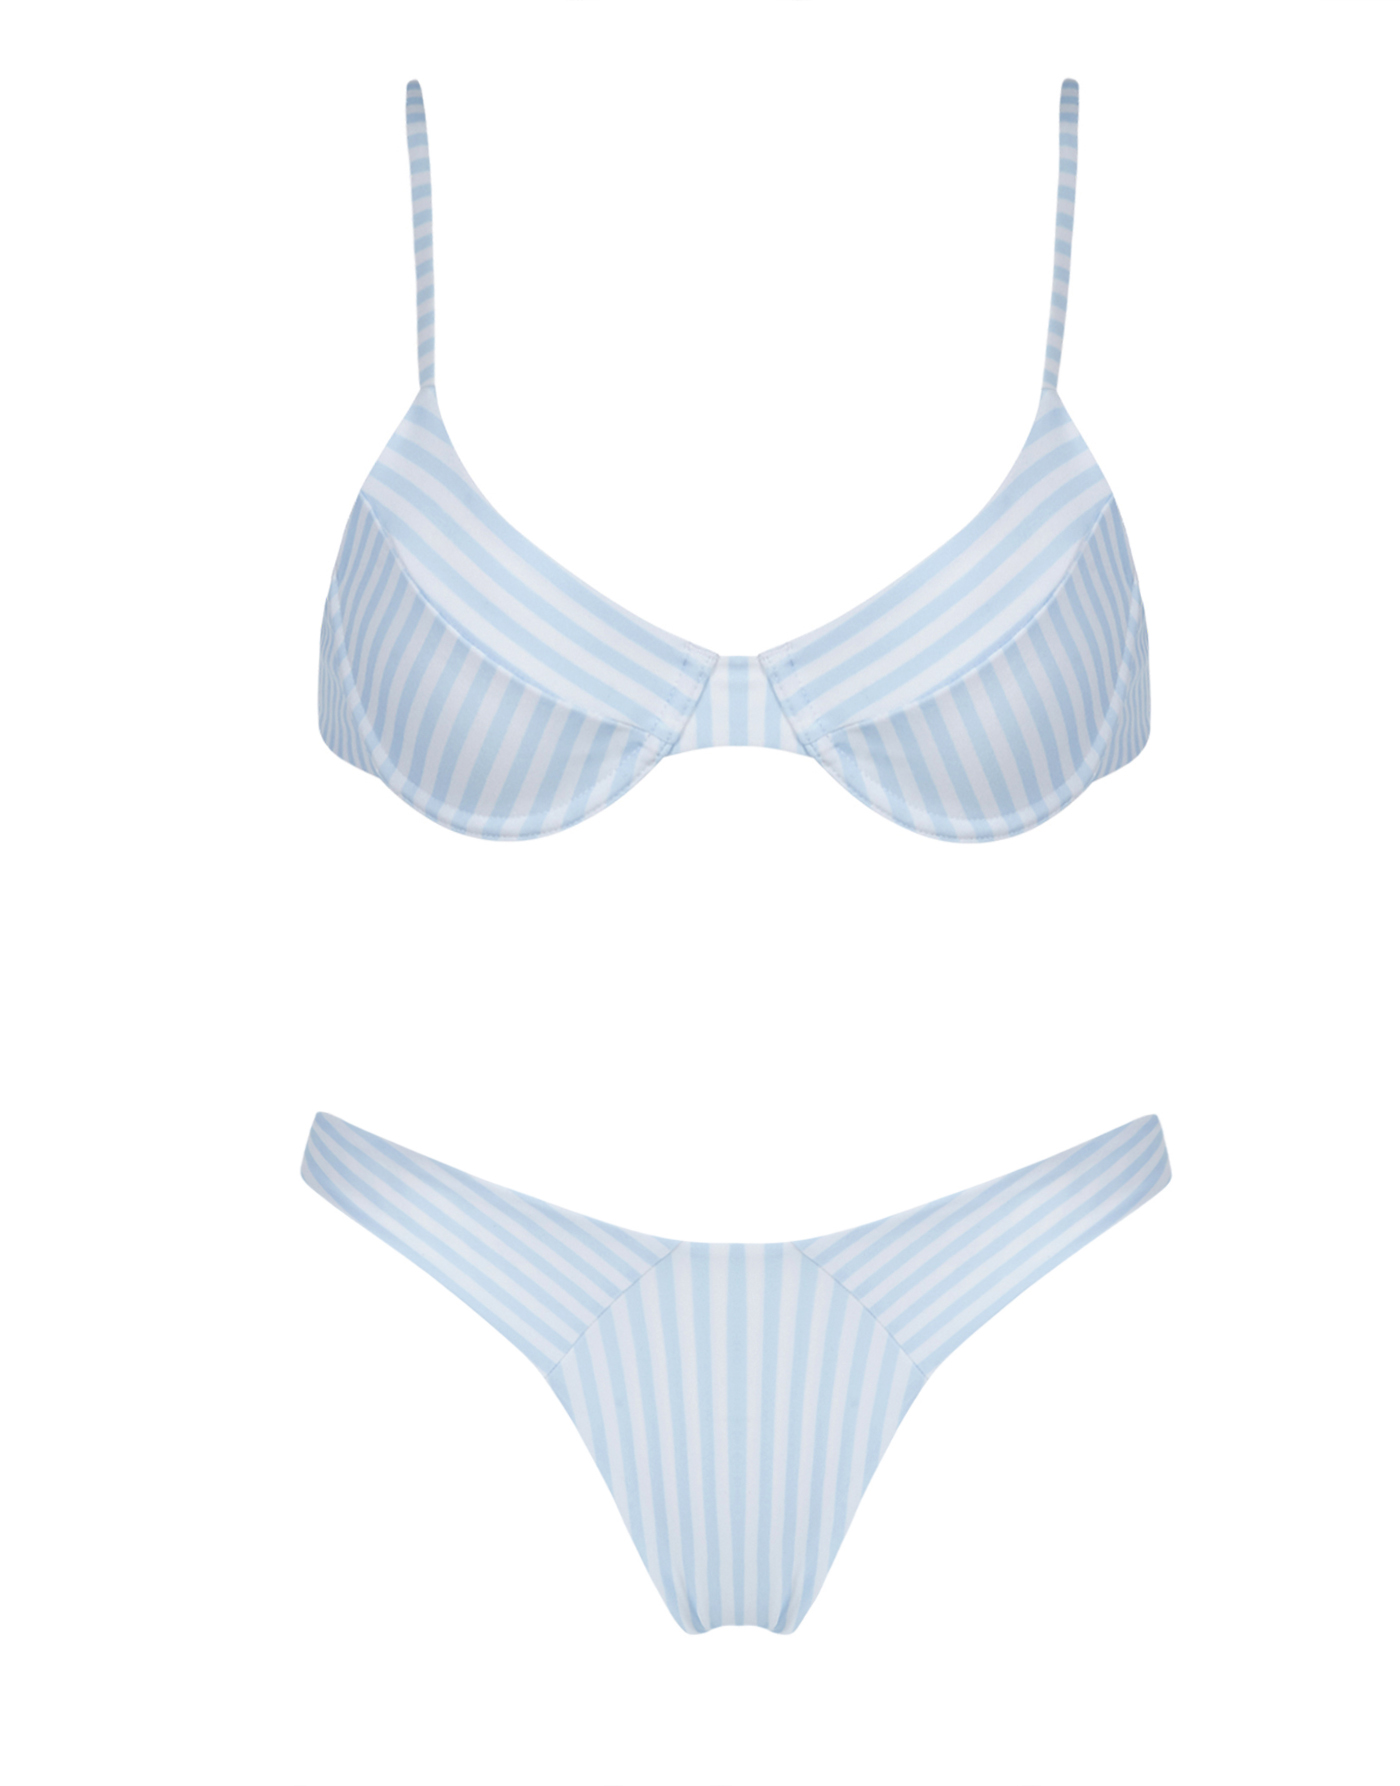 Molly bikini  striped 21.jpg